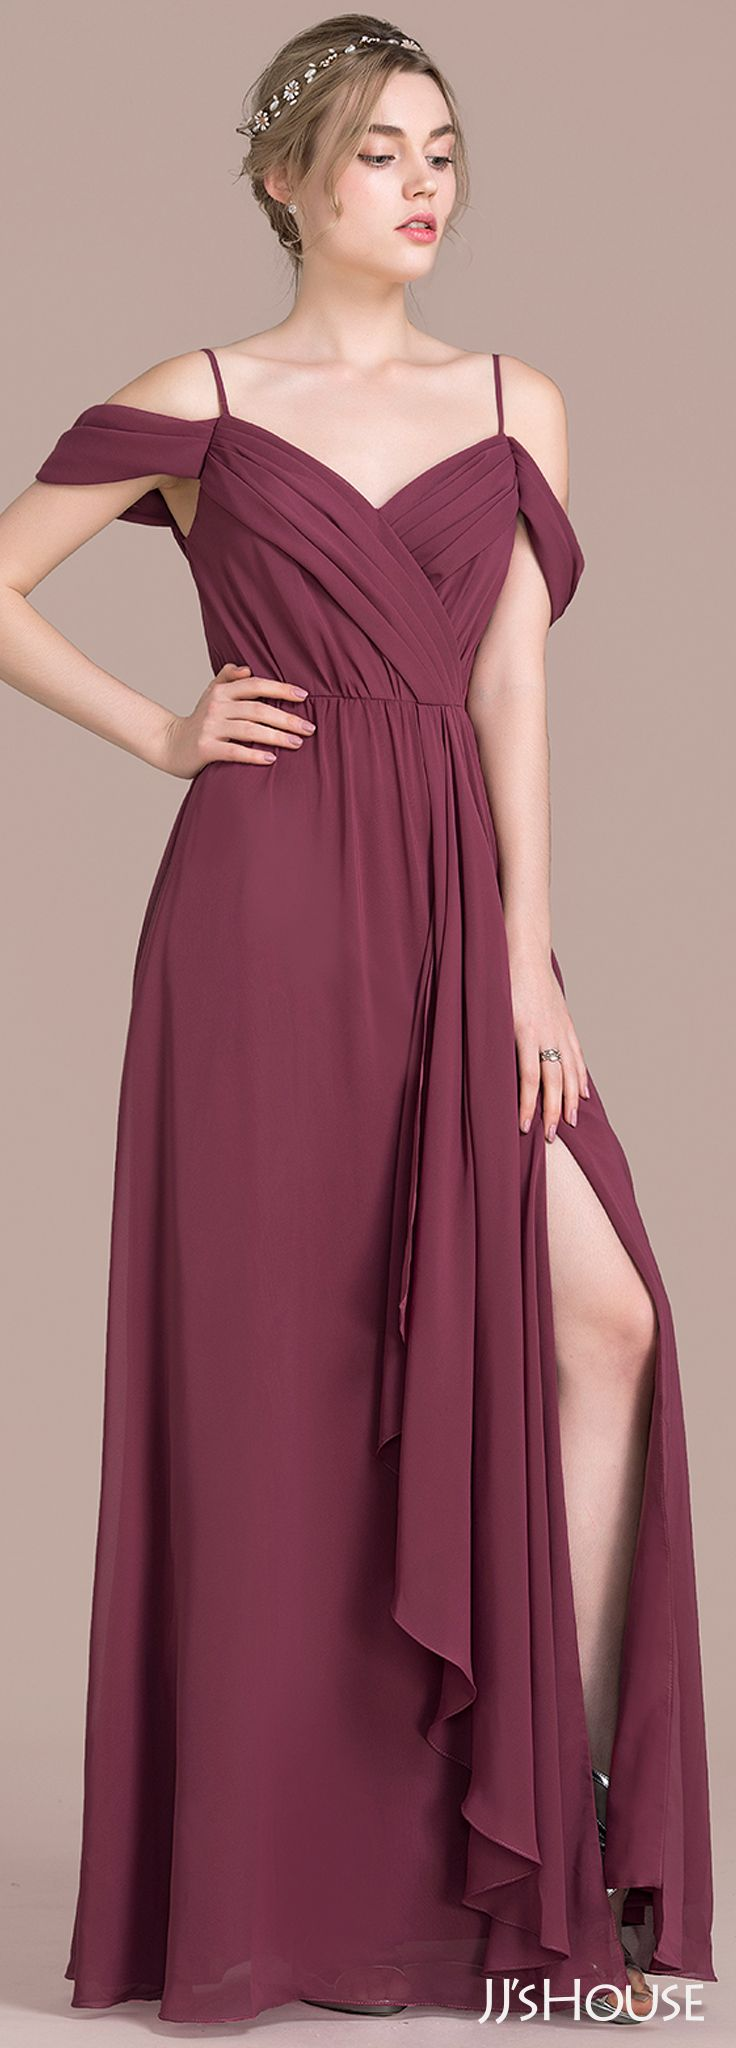 JJsHouse #Bridesmaid | vestidos | Pinterest | Adidas, Prom and Gowns